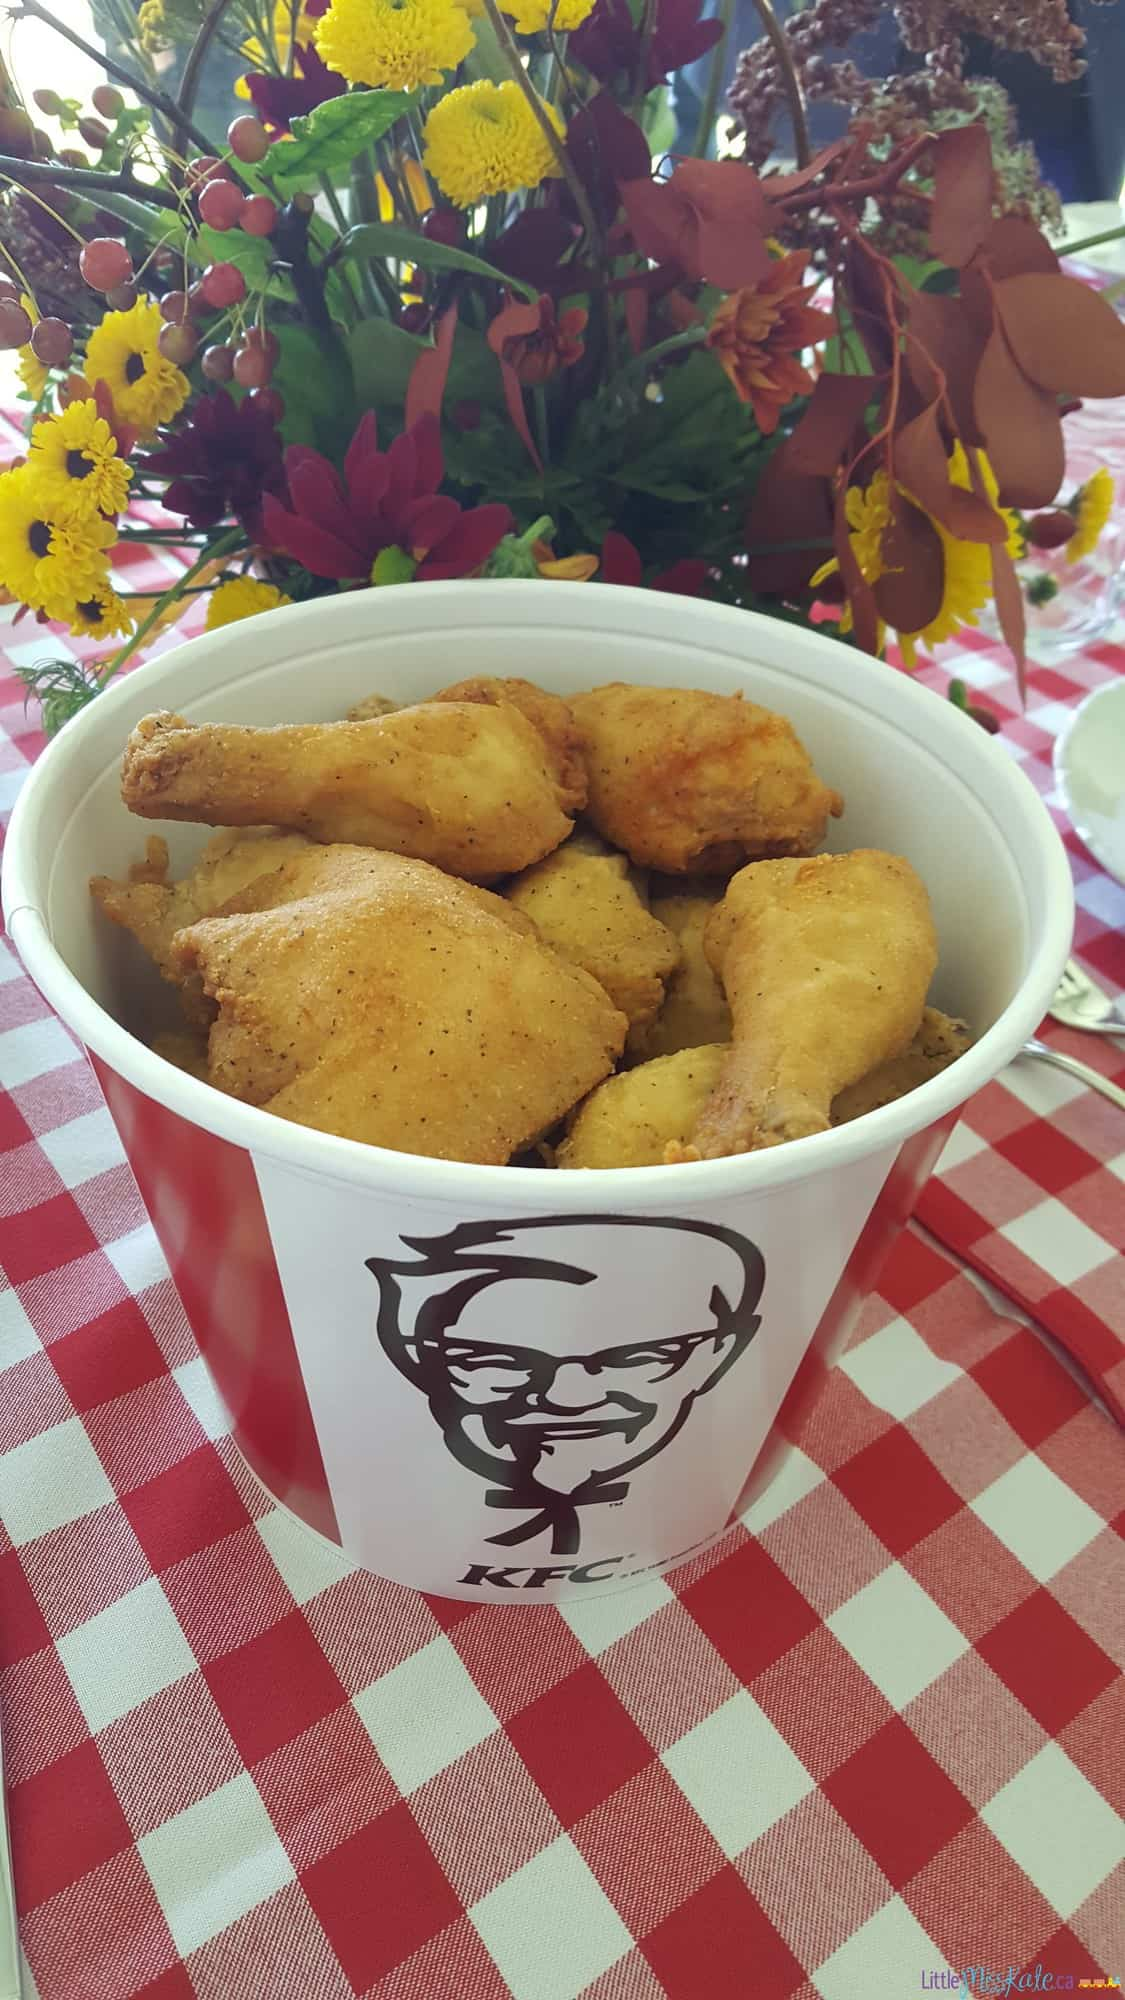 What is REALLY in KFC? Myths and Facts about Kentucky Fried Chicken via littlemisskate.ca